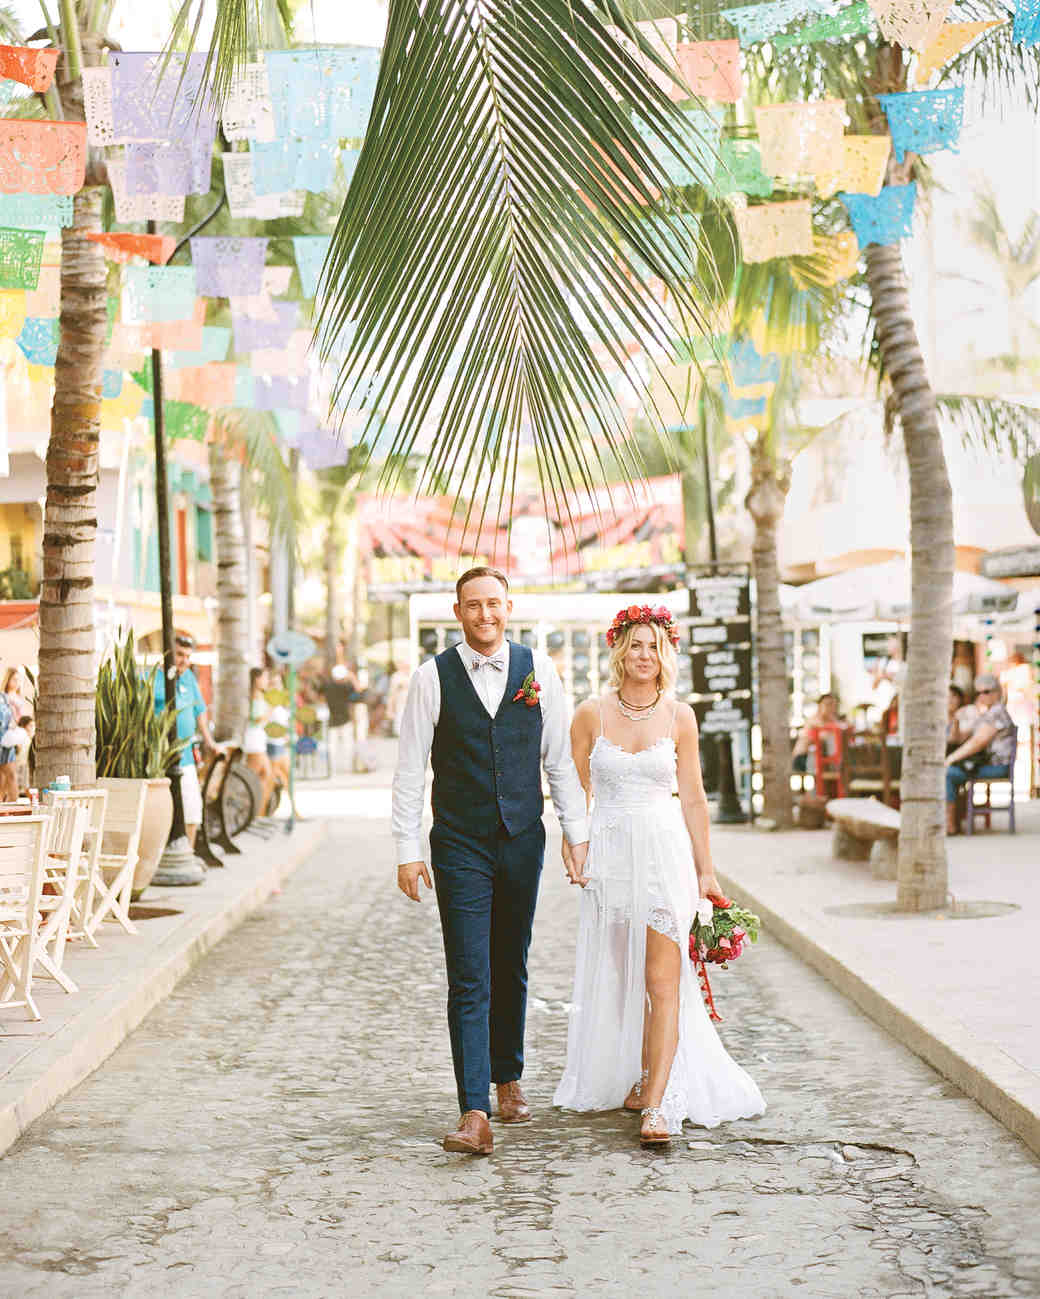 Beach Wedding Ceremony Michigan: 25 Dreamy Beach Wedding Dresses